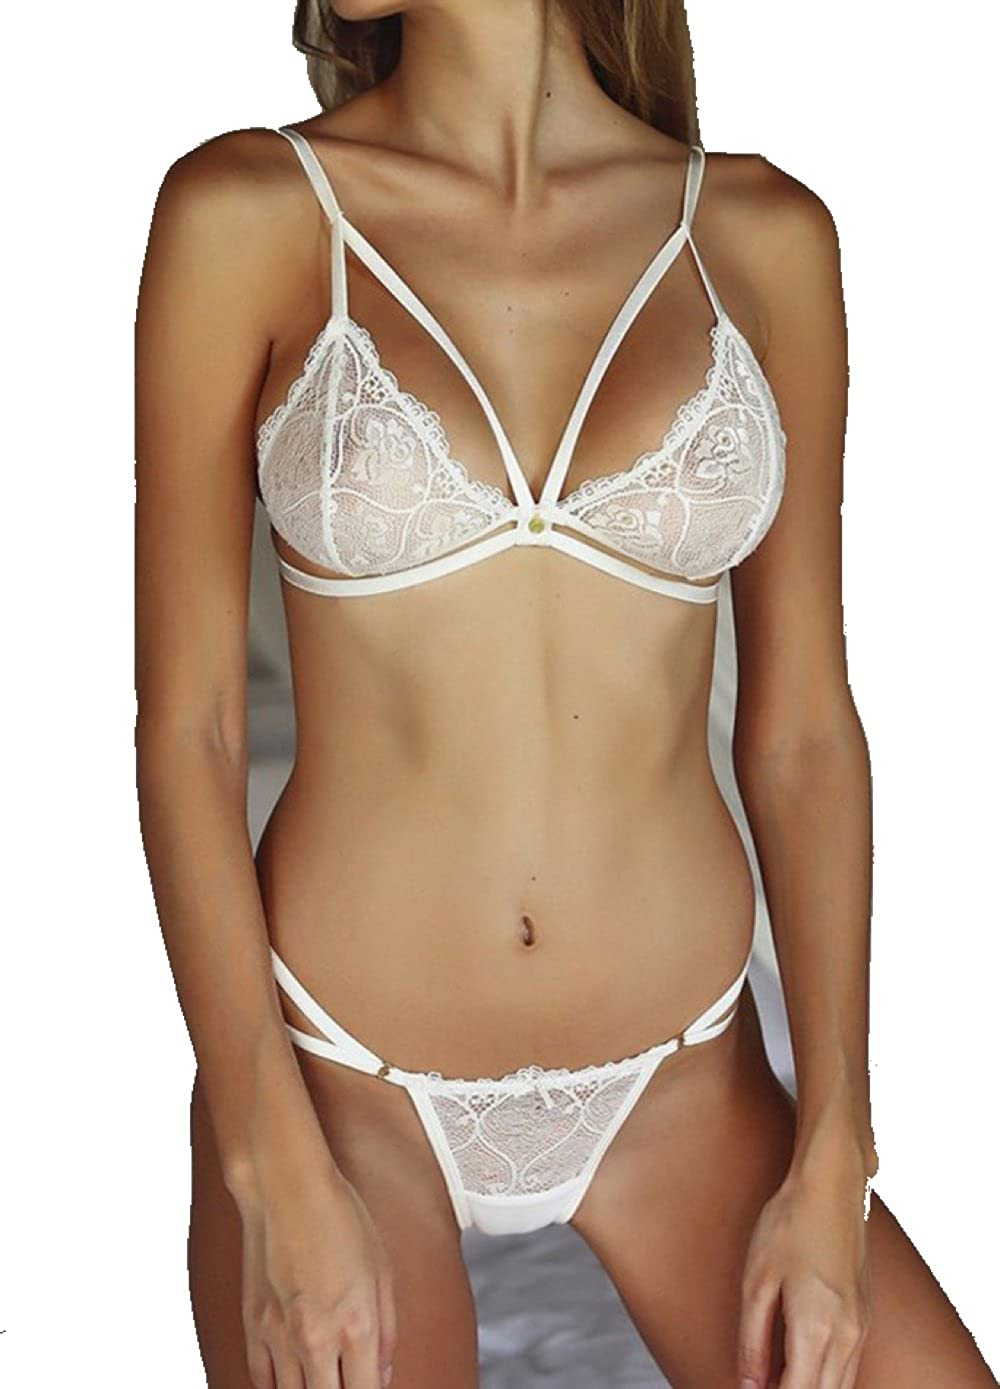 f6ecab9f24b Sexy Lingerie Set Lace Bra and Panty Set. Two Pieces Babdyoll Nightwear  Outfits